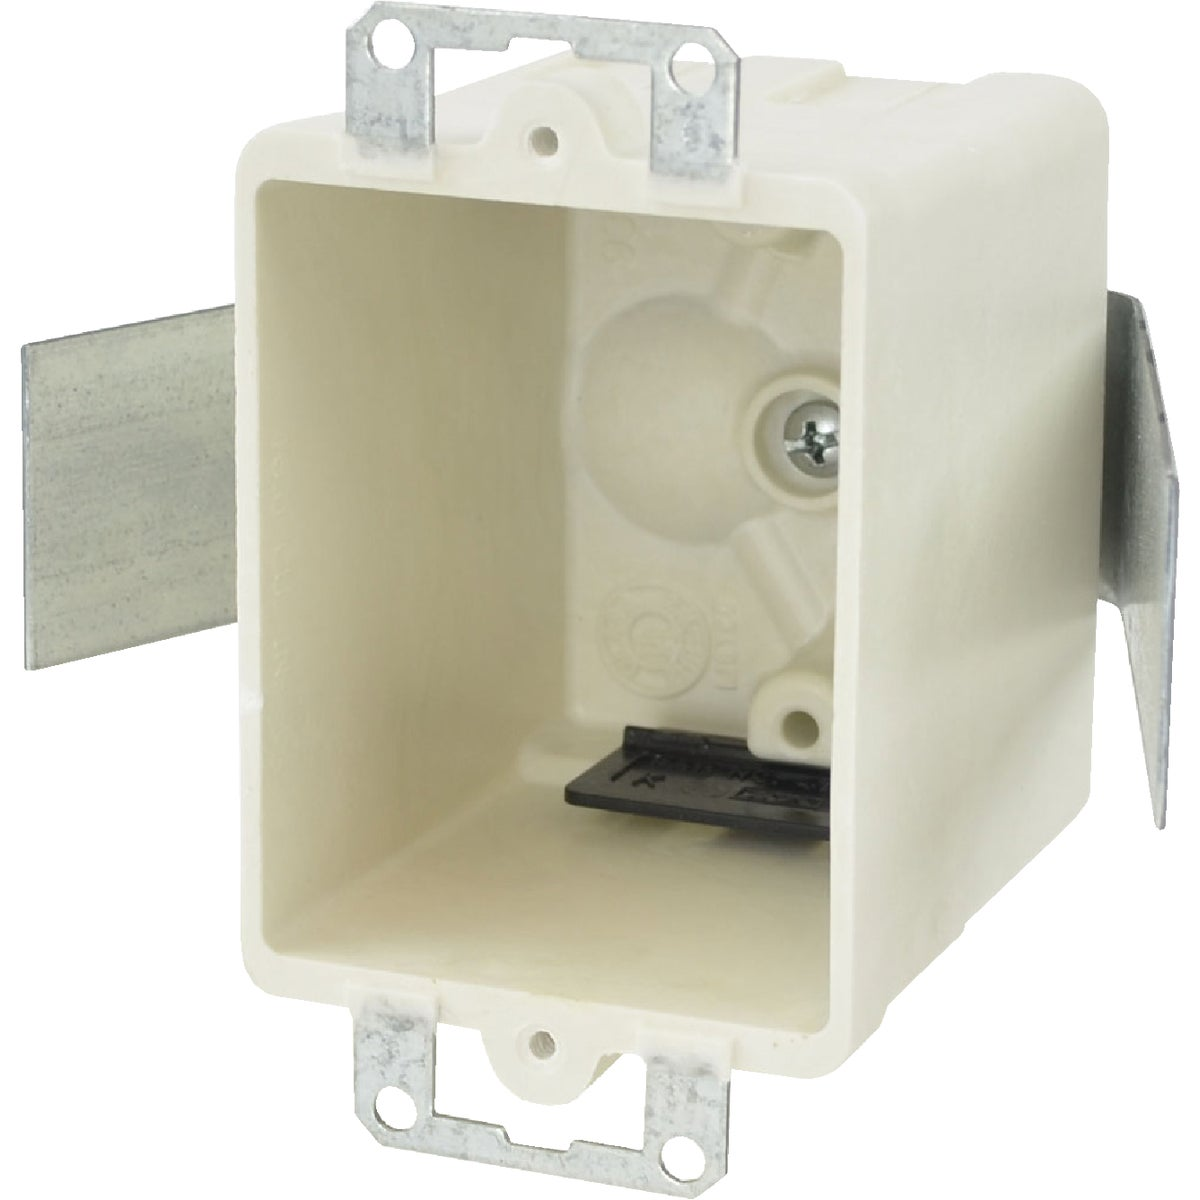 FIBERGLASS SWITCH BOX - 9361=ESK by Allied Moulded